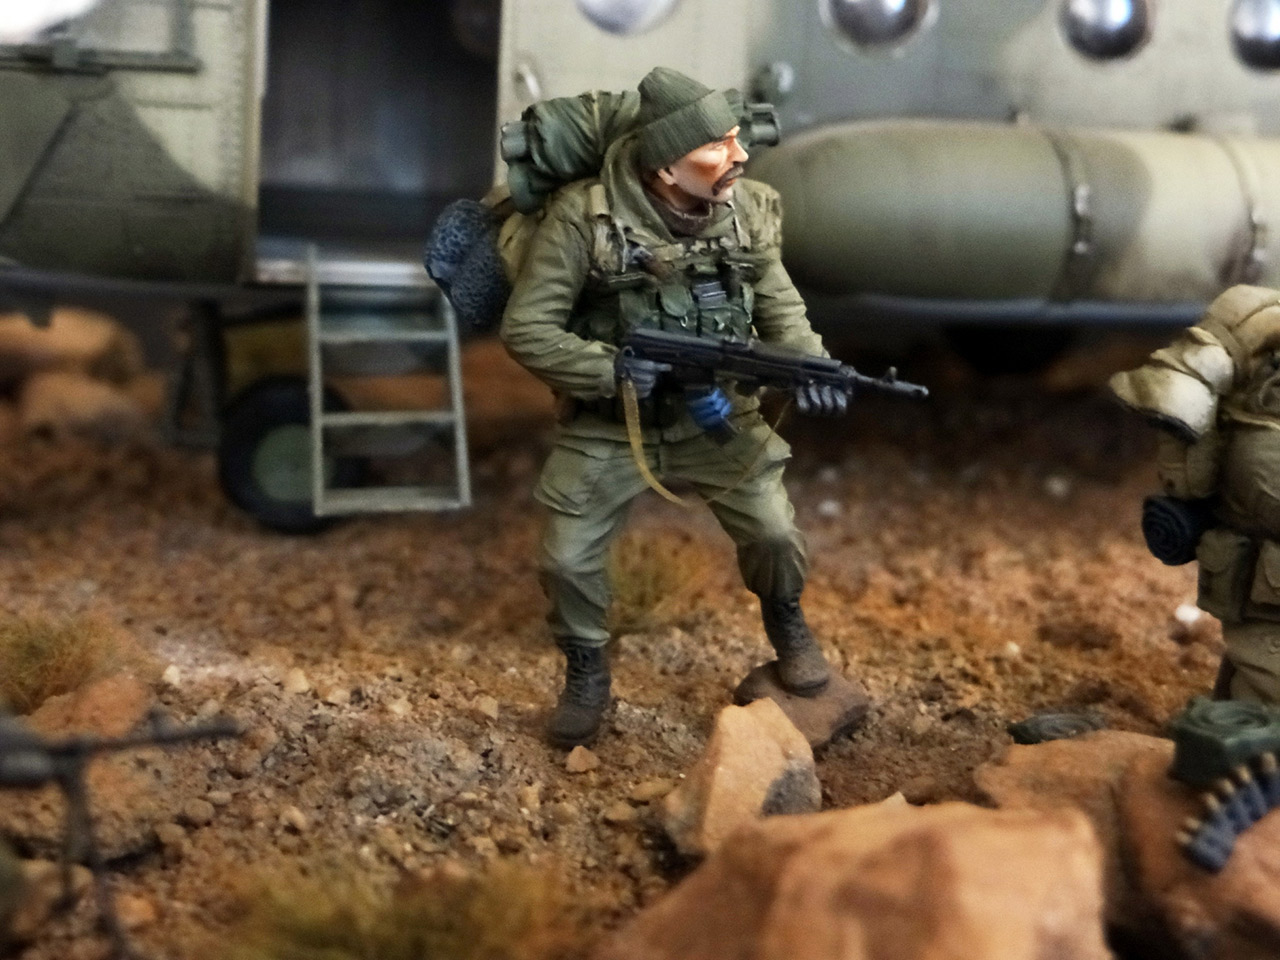 Dioramas and Vignettes: GRU special forces in Afghanistan, photo #18